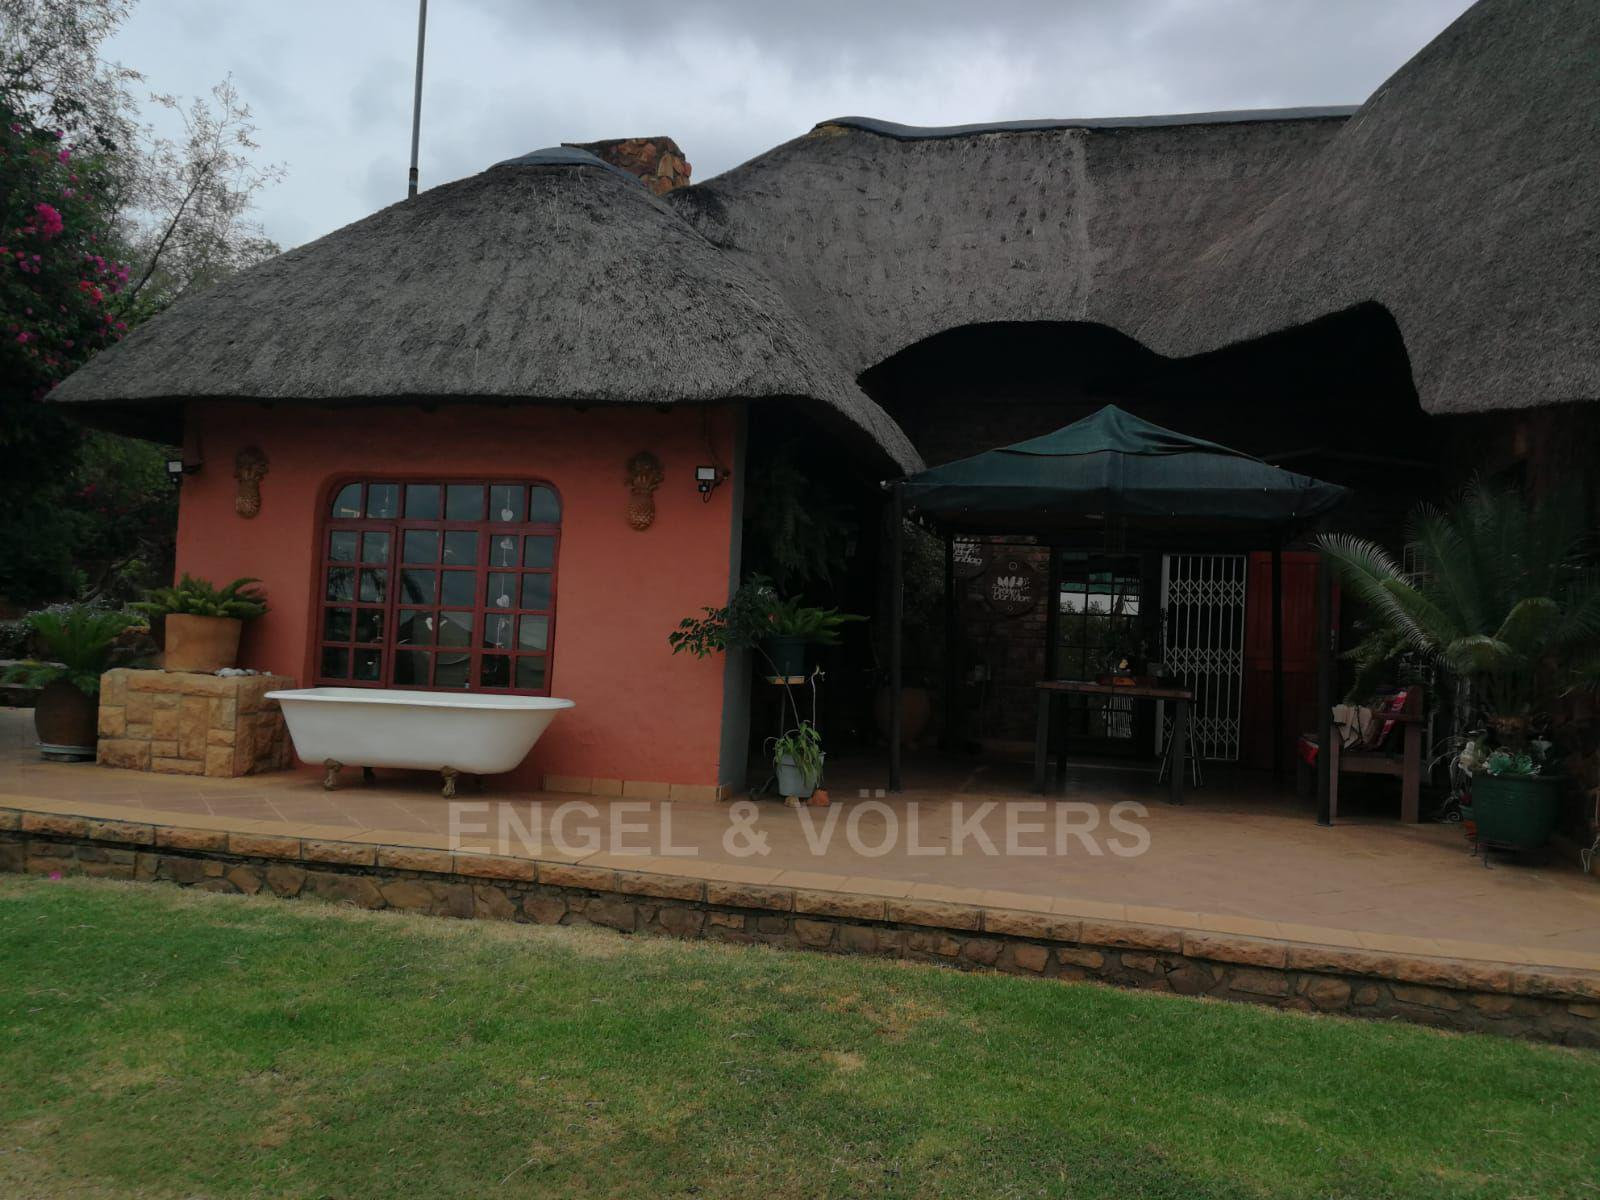 Land in Hartbeespoort Dam Area - Well maintained property